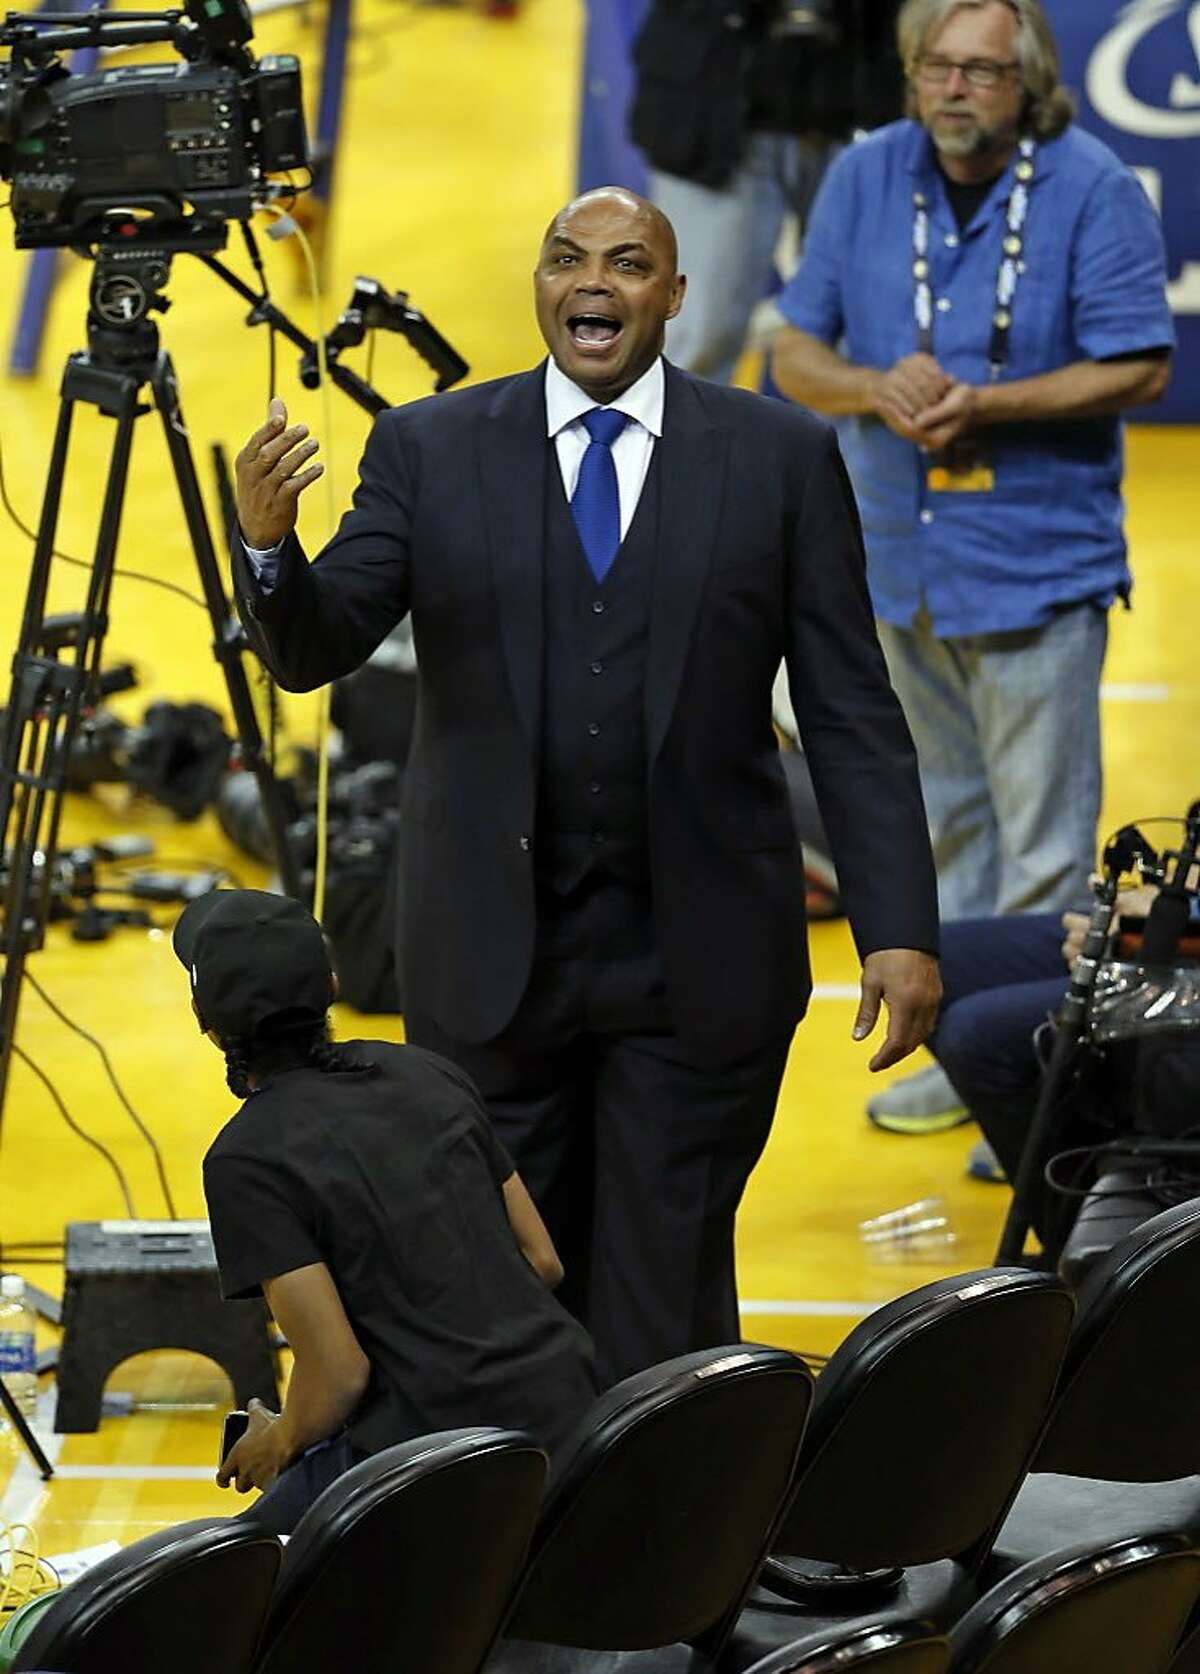 TNT commentator Charles Barkley has a heated conversation with a heckler after Golden State Warriors' 108-102 loss to Oklahoma City Thunder in Game 1 of NBA Playoffs' Western Conference Finals at Oracle Arena in Oakland, Calif., on Monday, May 16, 2016.